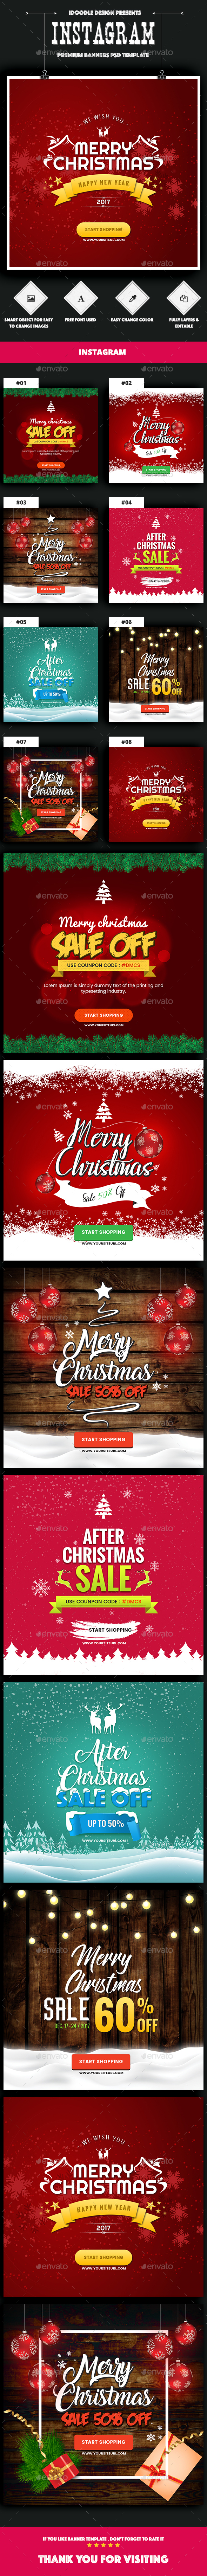 Instagram Merry Christmas Banners Ad - 08 PSD - Social Media Web Elements